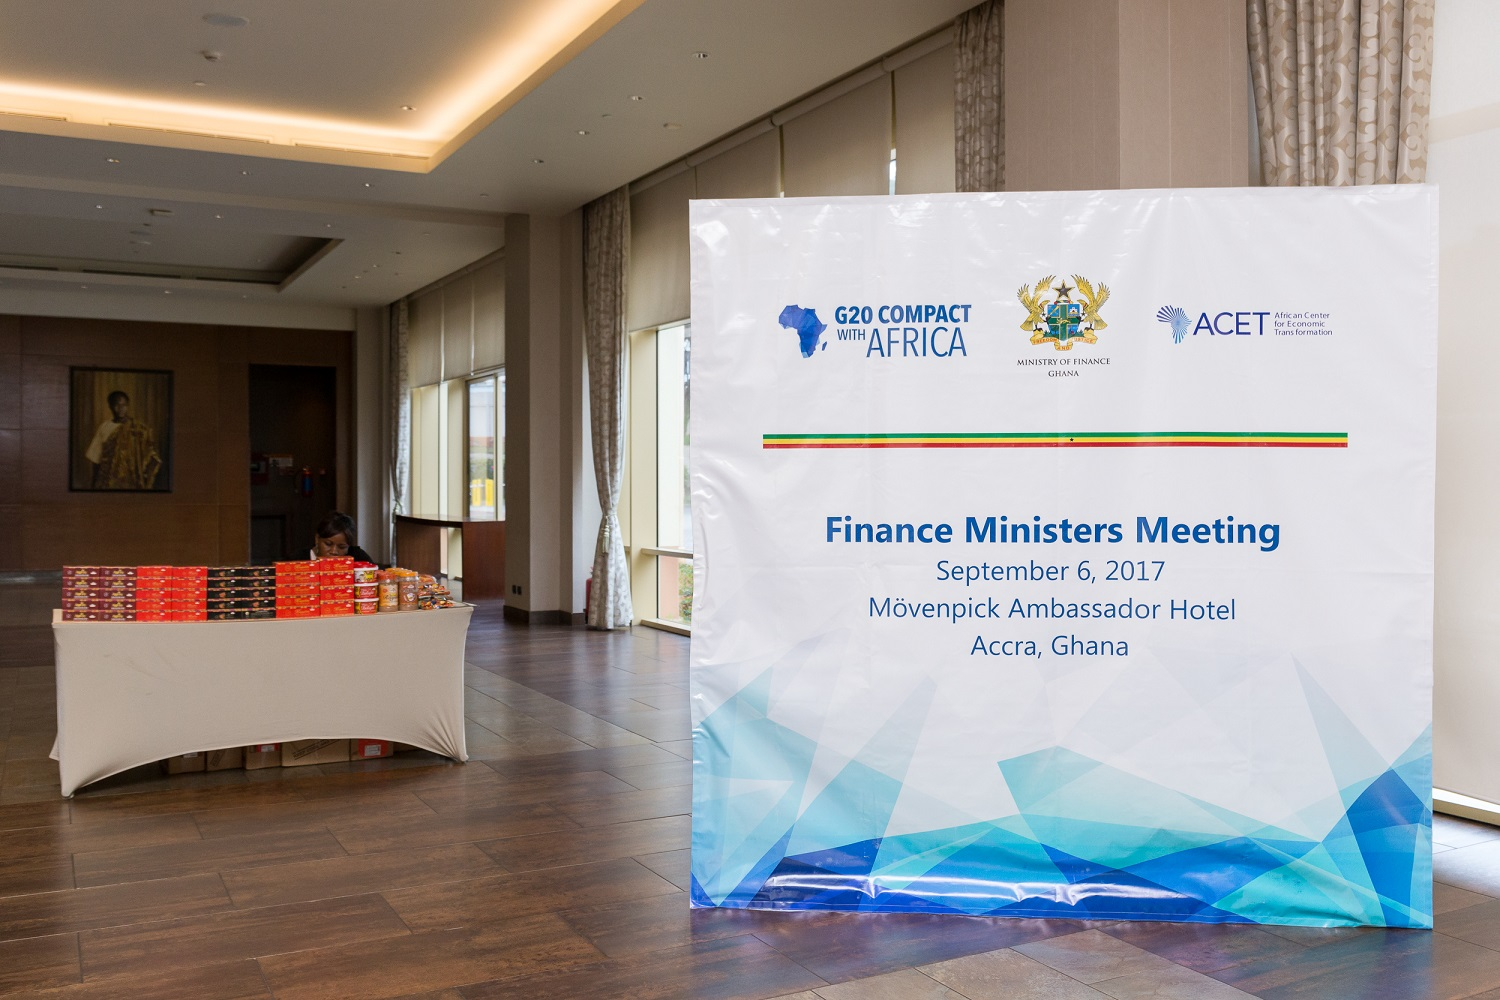 Finance Ministers Meeting